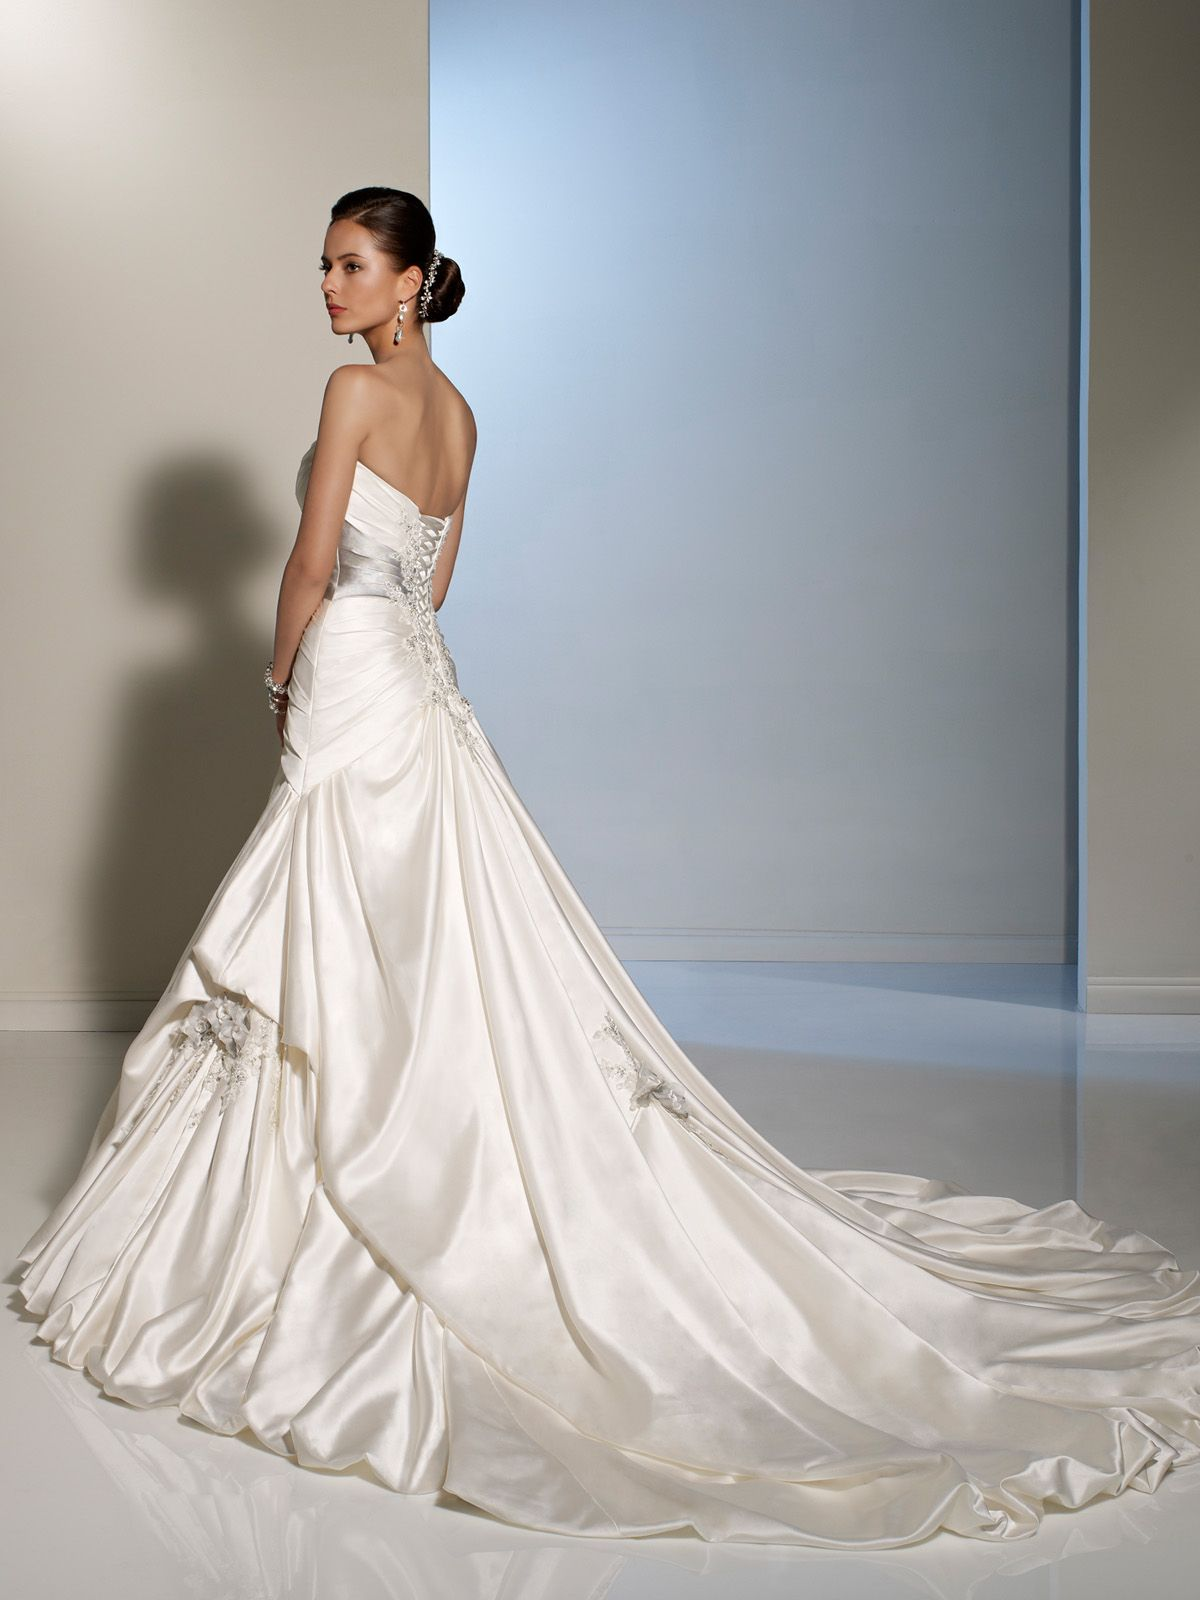 Pacifica is a uniquely modern ball gown crafted from paris satin and